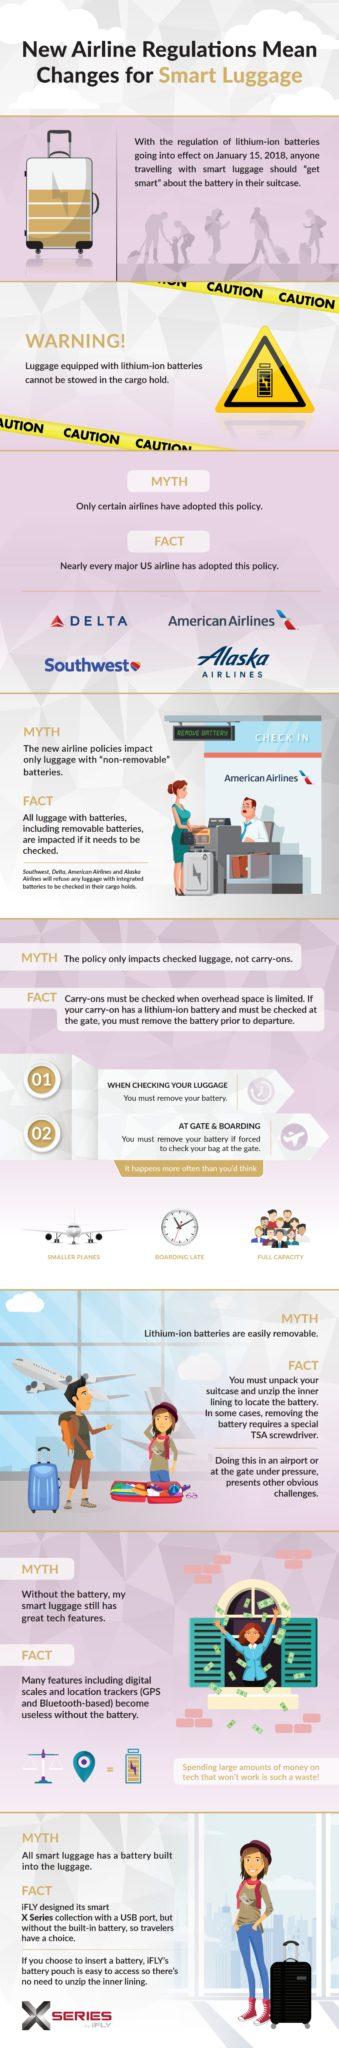 smart luggage restrictions business travel life